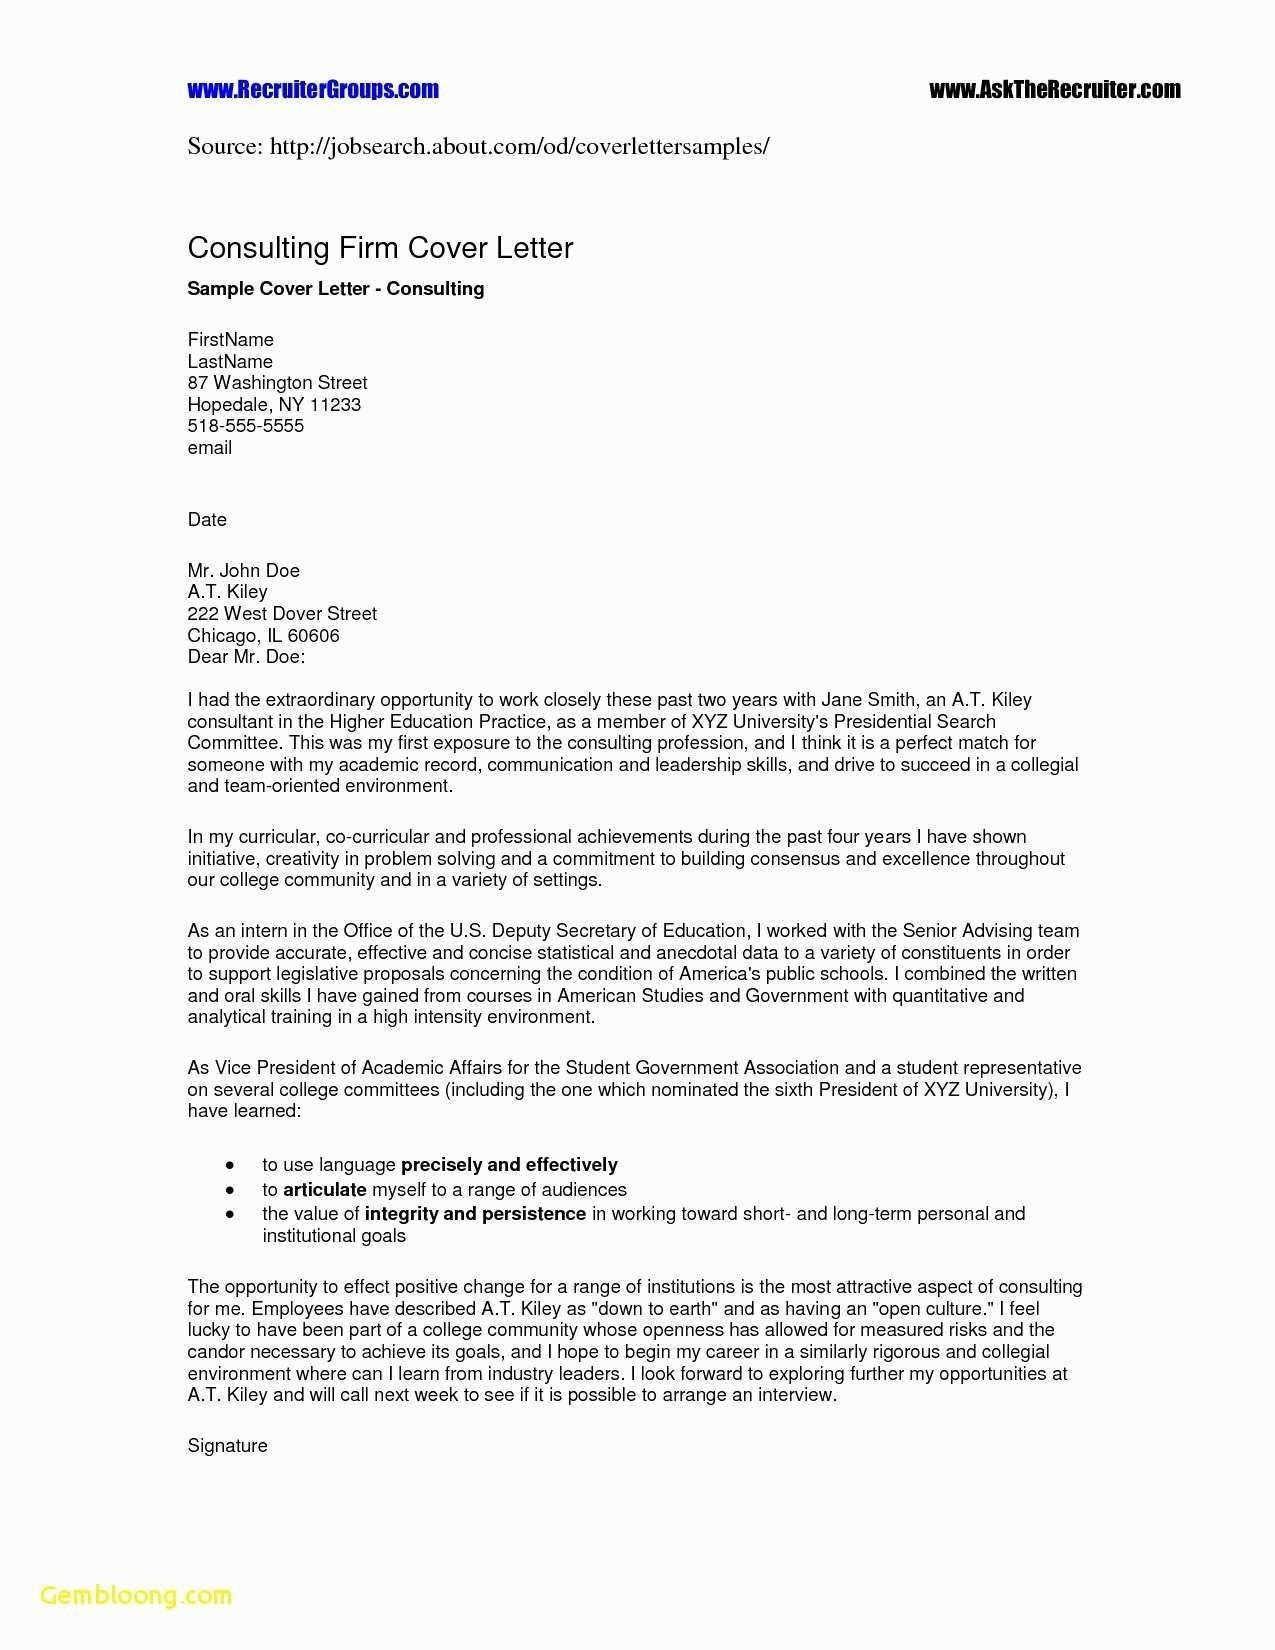 Cover Letter Template Fill In - Great Cover Letter New Fill In Resume Awesome Fresh Cover Letter